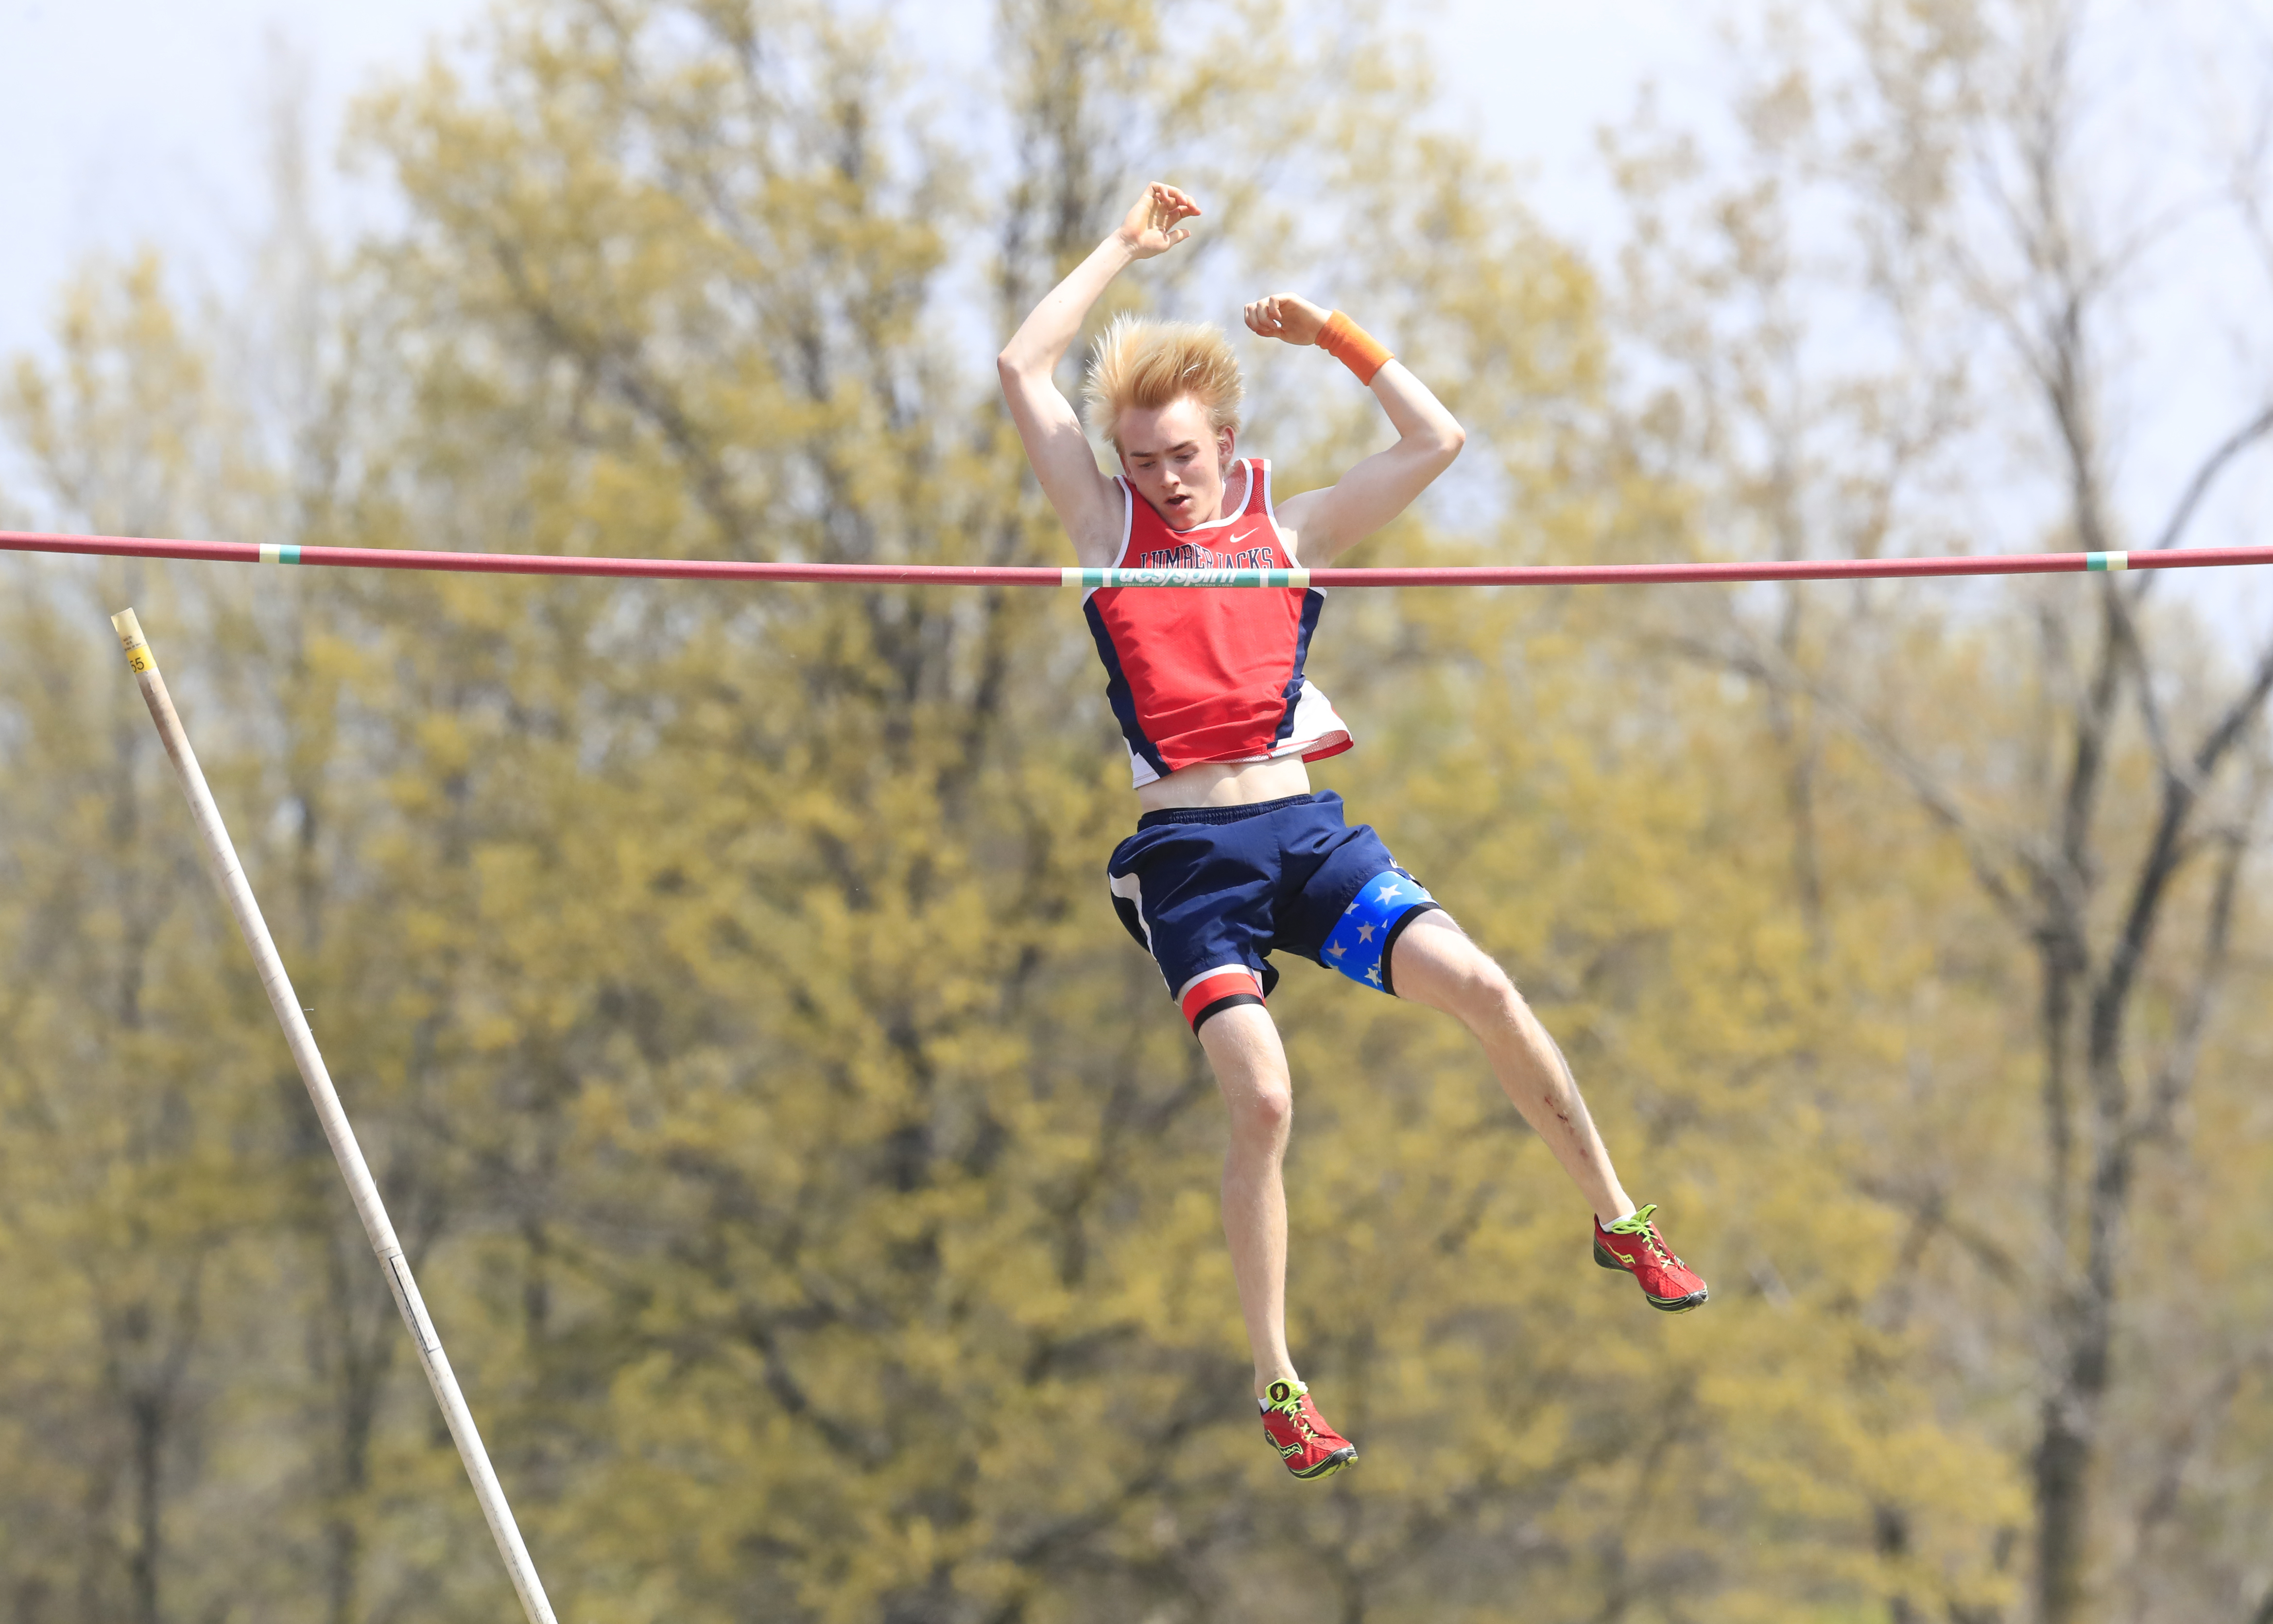 North Tonawanda's Anton Kunnas, a native of Finland, clears 13 feet, 9 inches during a recent meet at Lew-Port.  (Harry Scull Jr./Buffalo News)